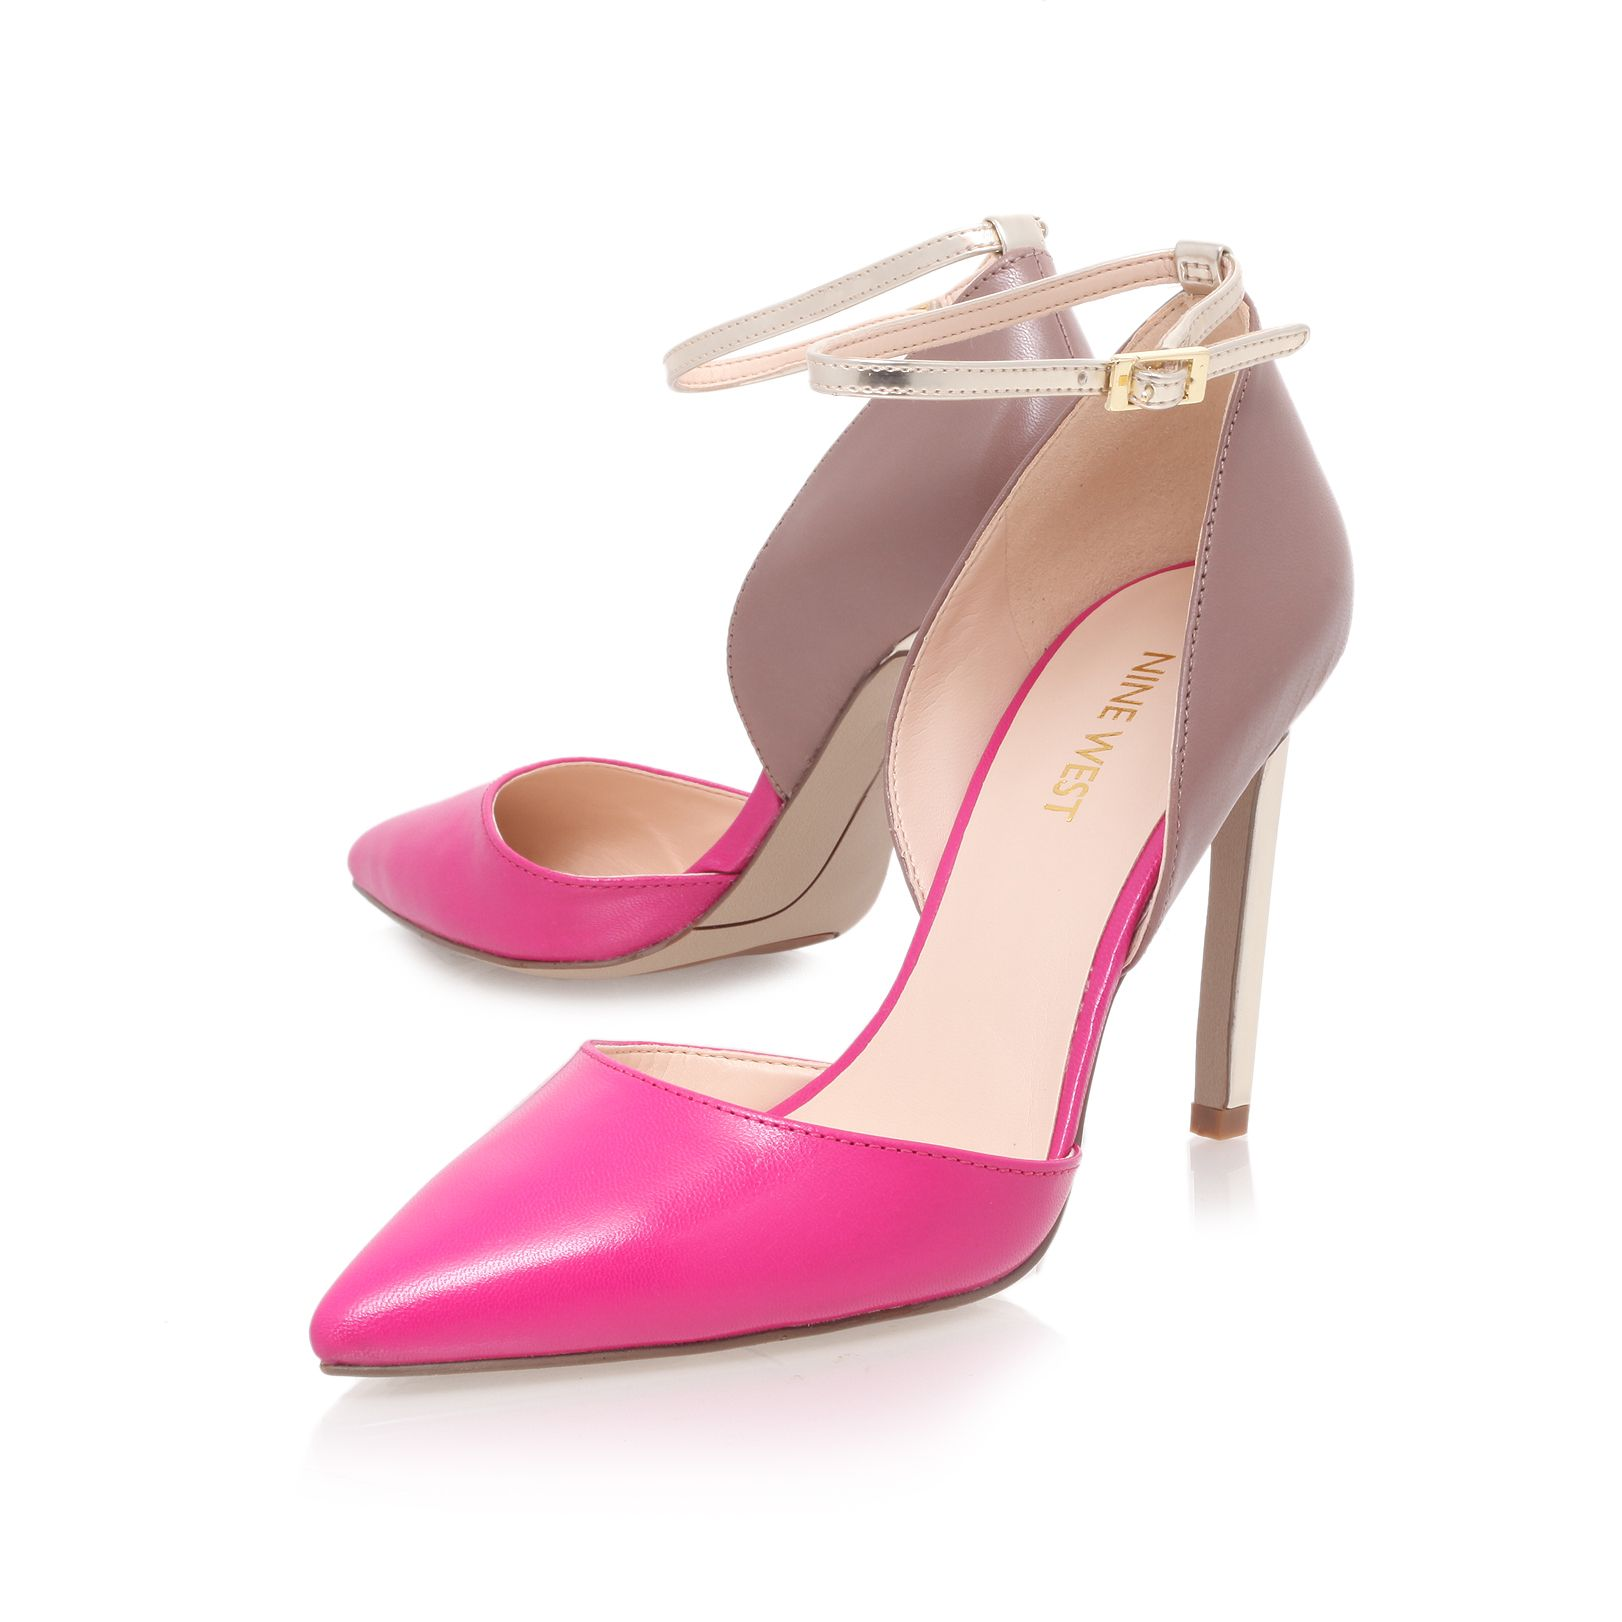 Timeforsho high heel court shoes